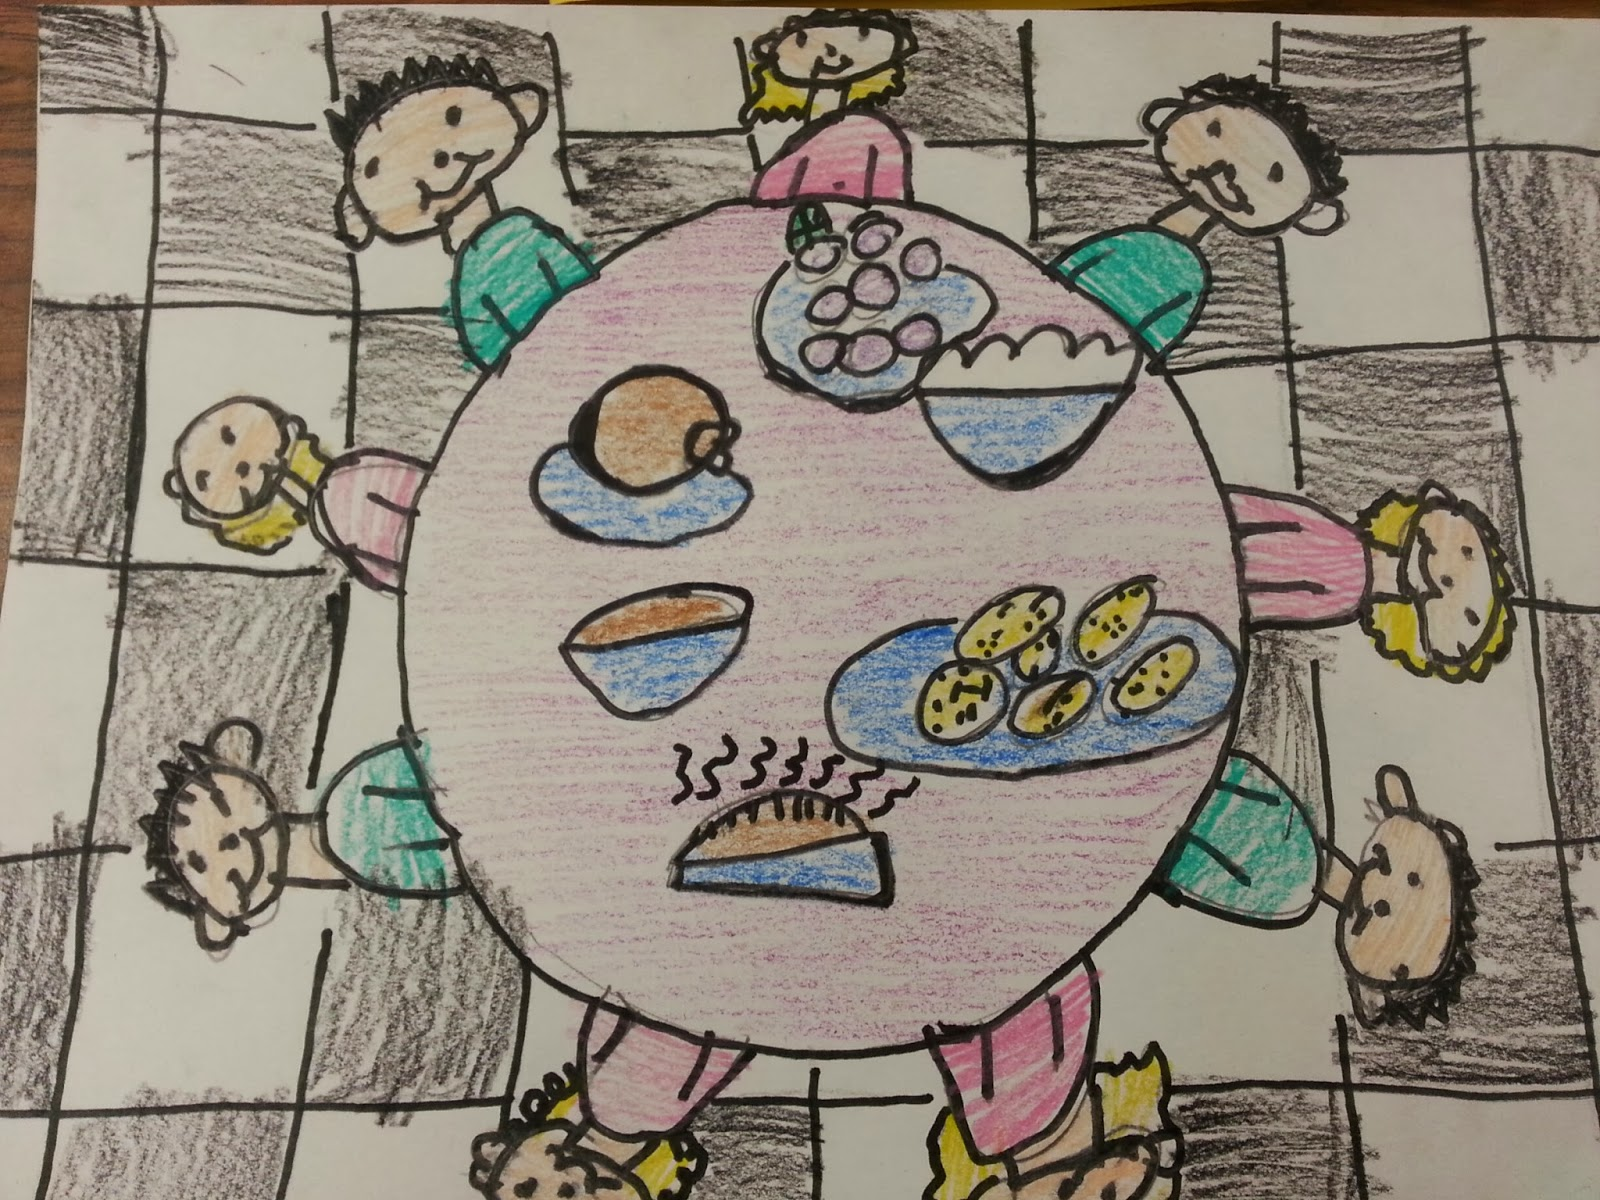 Thanksgiving turkey dinner drawing - photo#28